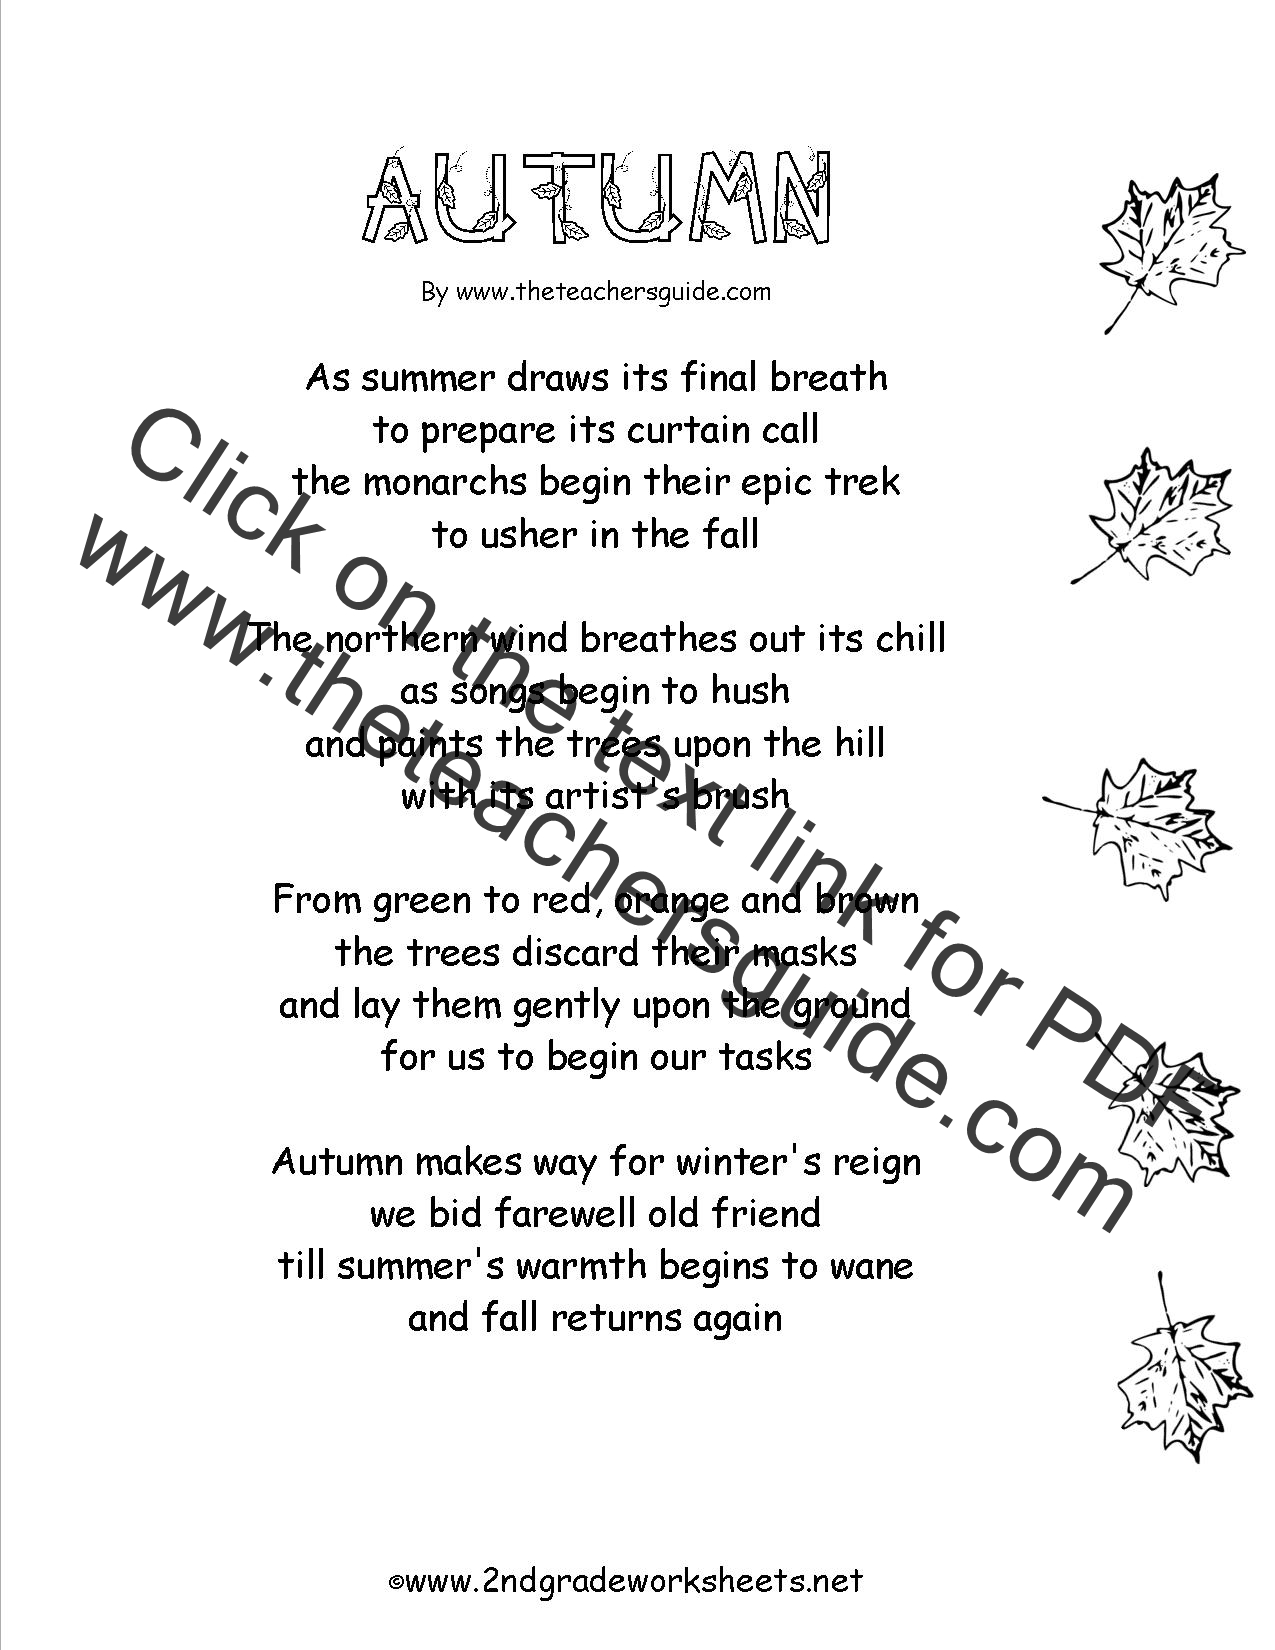 worksheet Autumn Worksheets autumn theme worksheets and printouts worksheet poem with comprehension questions